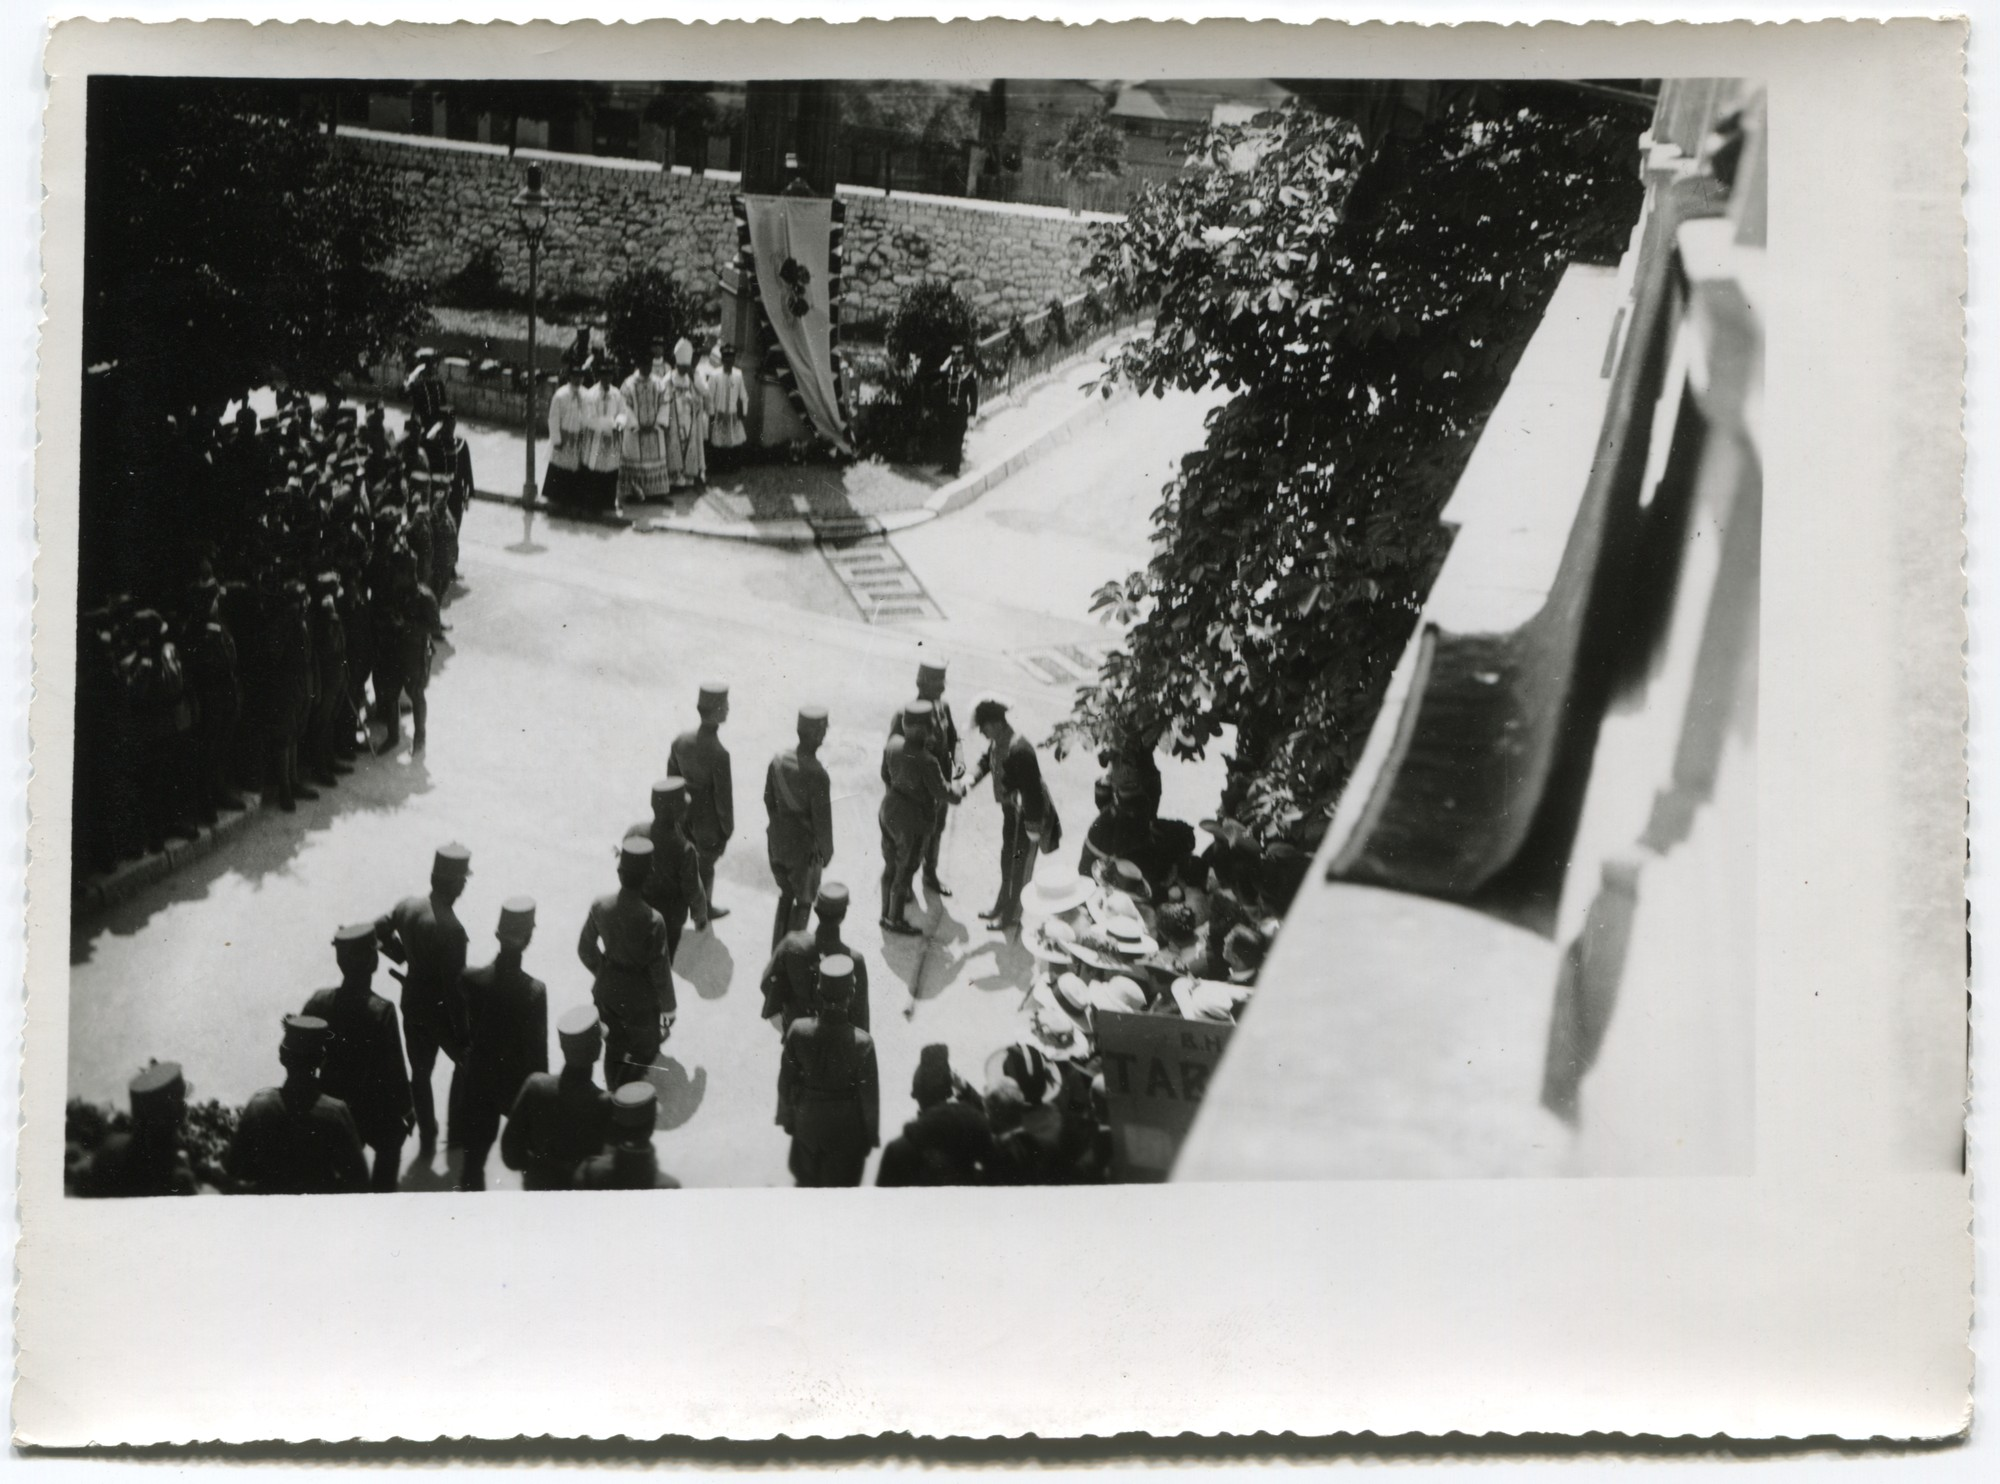 Unveiling of the memorial stone on the occasion of the assassination of Franz Ferdinand and his wife Sophie, © Museum of City of Sarajevo